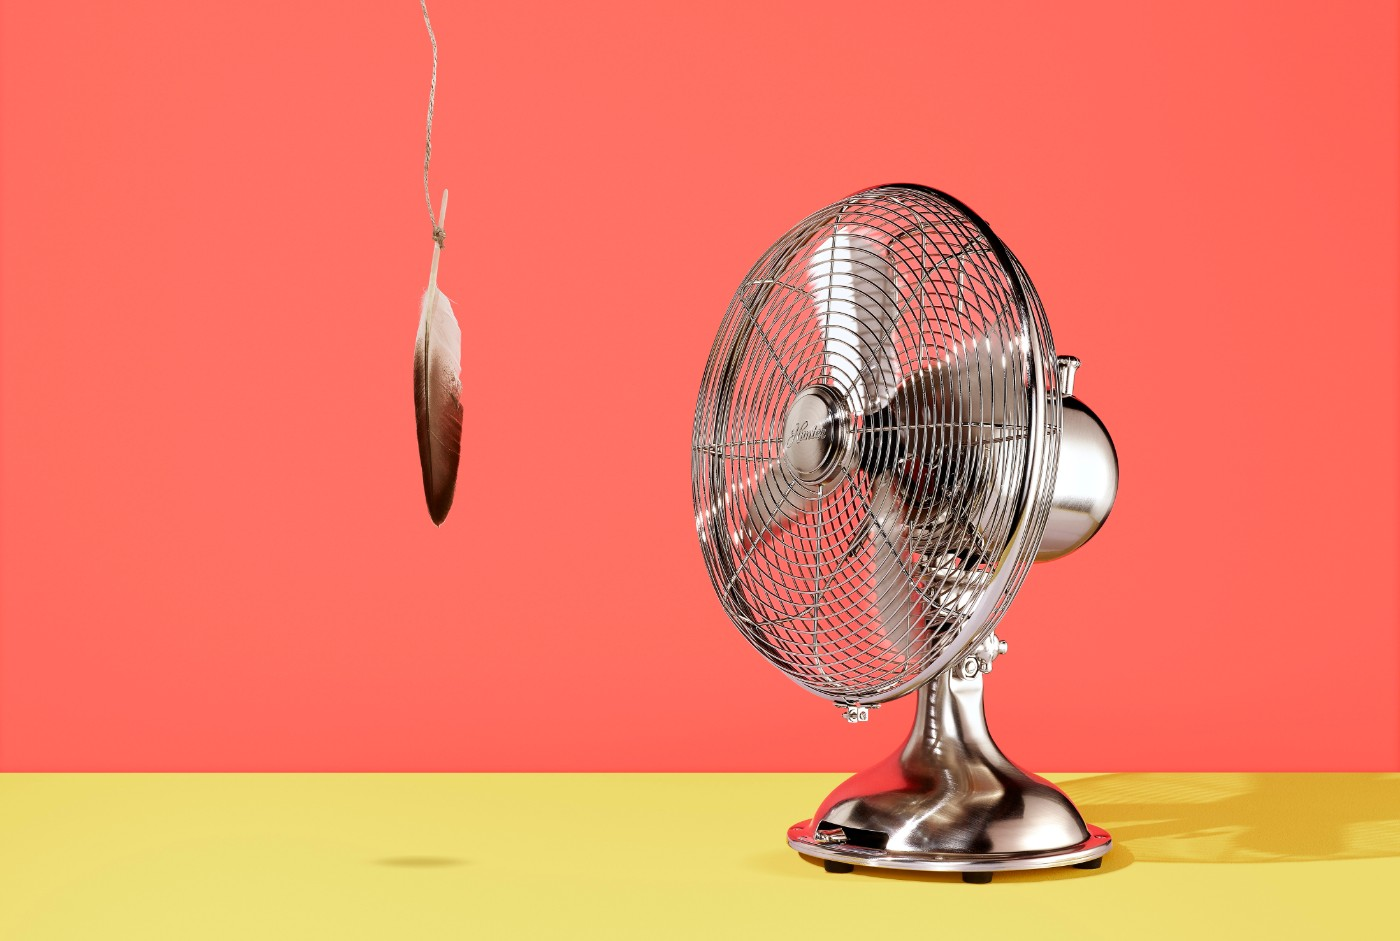 https://tickertapecdn.tdameritrade.com/assets/images/pages/md/A fan not turned on with a feather hanging on a string right in front of it